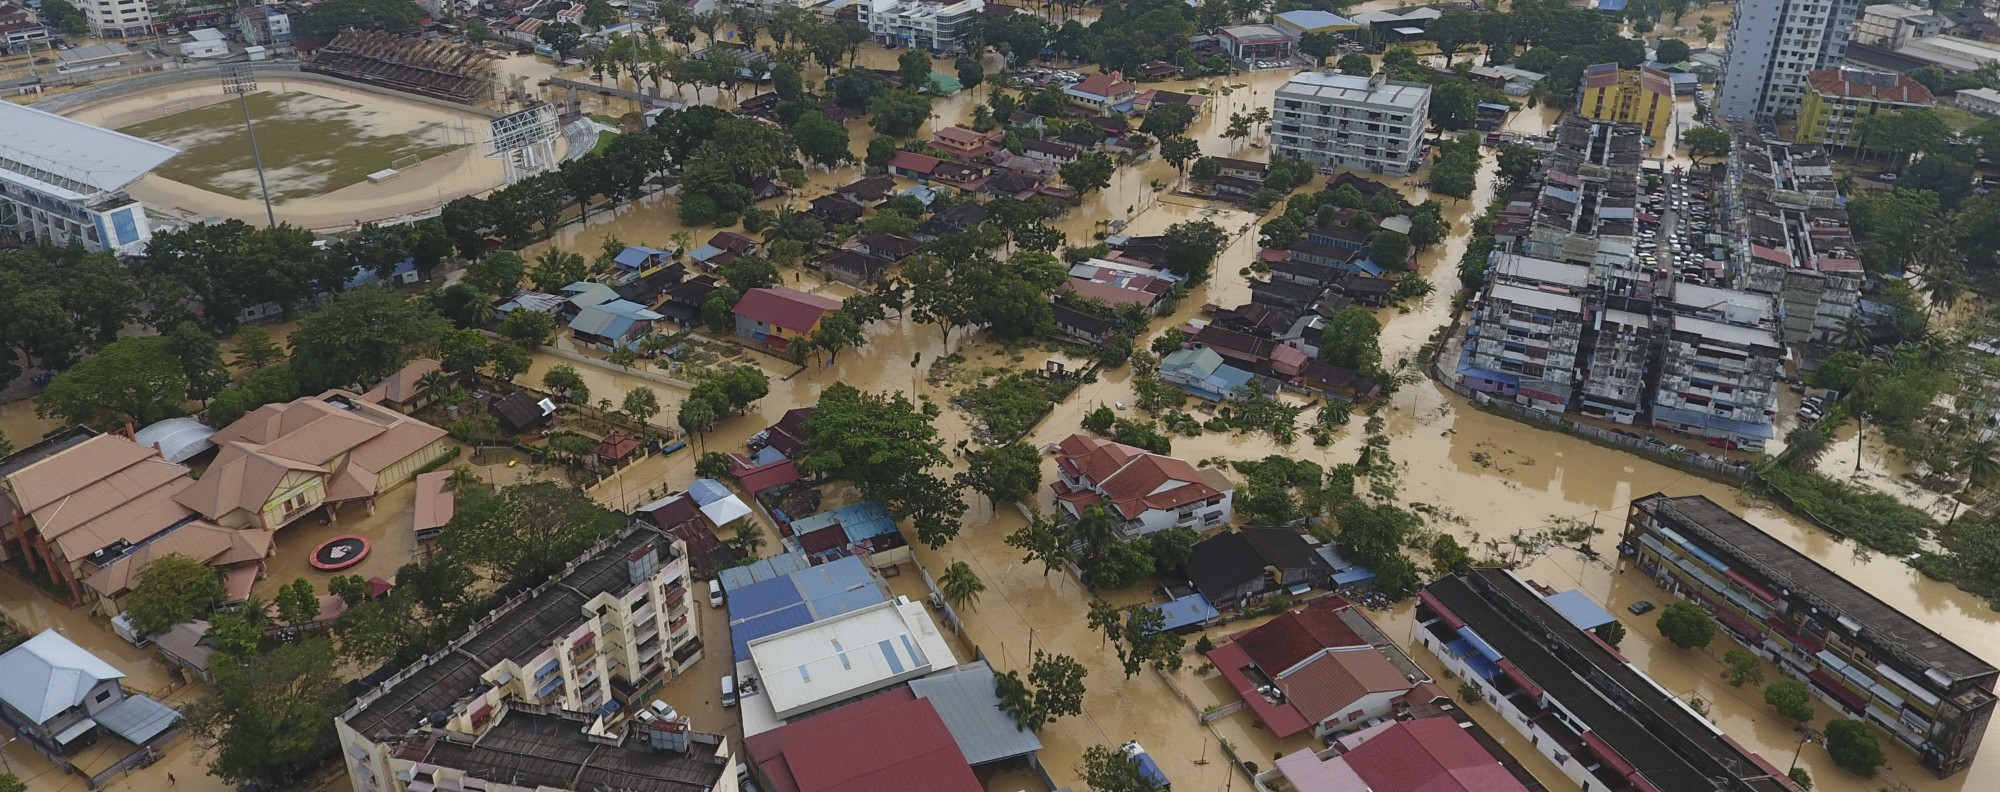 George Town city in Penang. Photo: AP